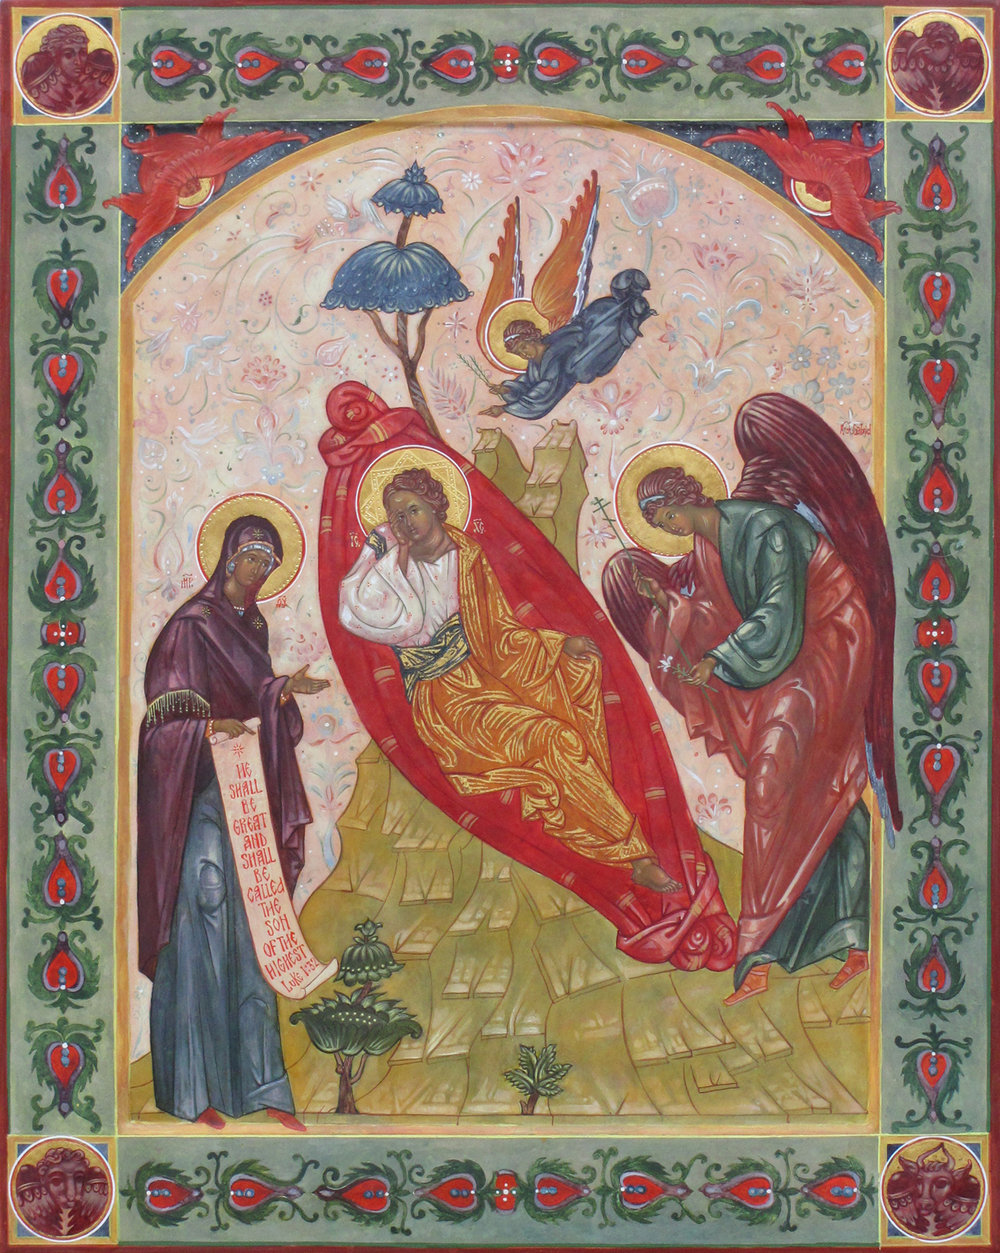 The Unsleeping Eye shows Mary and an angel watching over the sleeping Christ. His eyes are open, signaling His watchfulness over the world even in sleep. In the corners of the icon's raised frame appear the symbols of the four authors of the Gospels. These symbols were common in medieval art, with each author assigned his own winged emblem: Matthew, a man, Mark, a lion, Luke, an ox, and John, an eagle. The icon of the Unsleeping Eye has a long history in Russia.